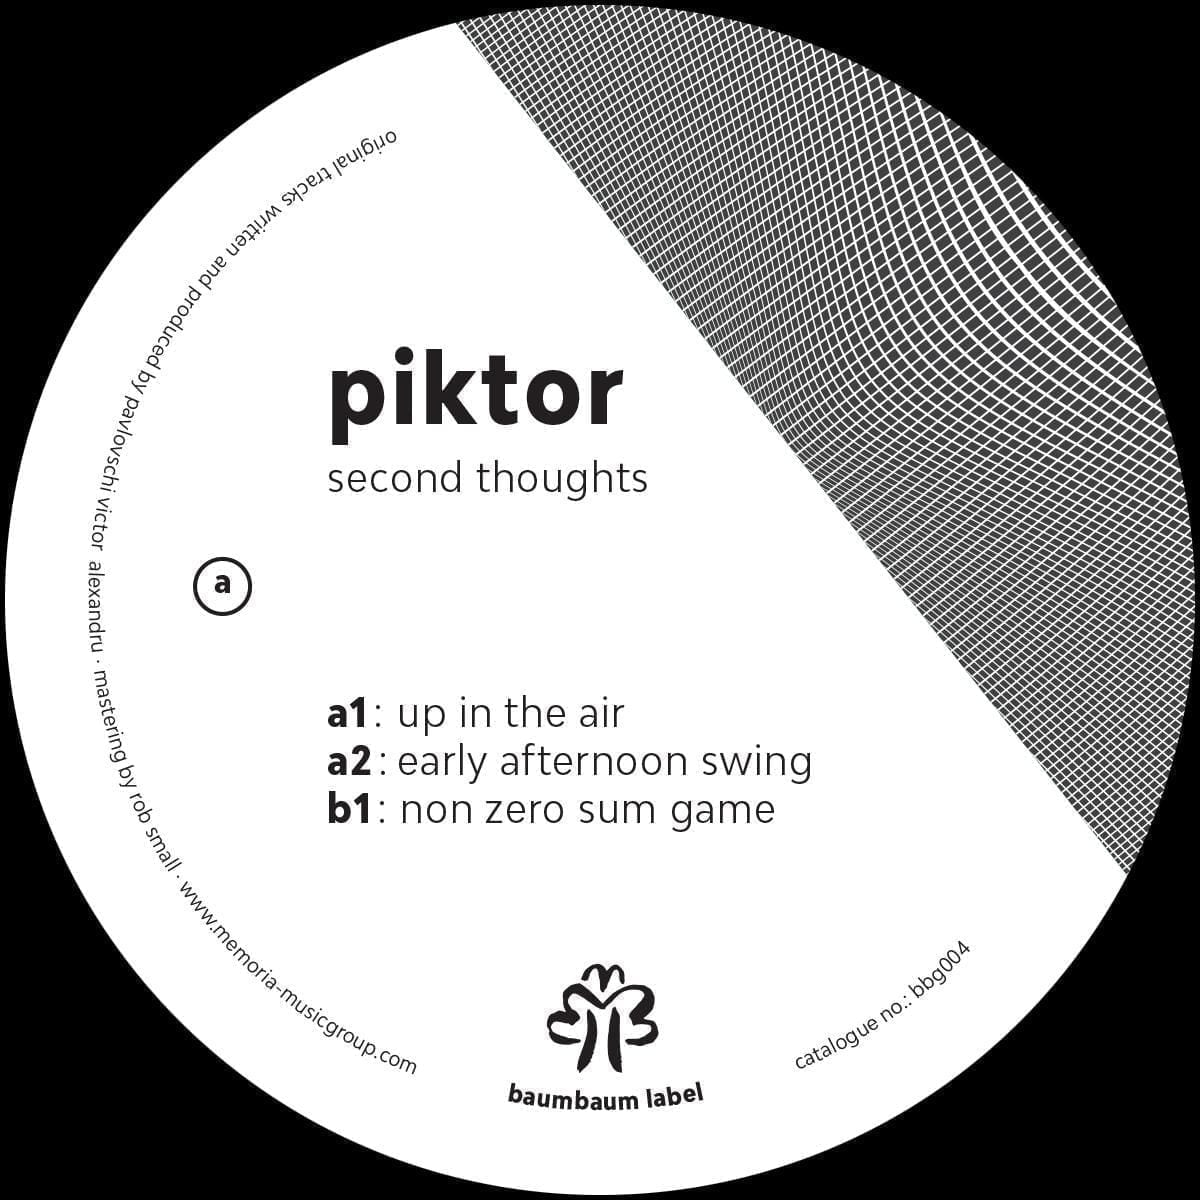 Piktor - Second Thoughts Baumbaum Label